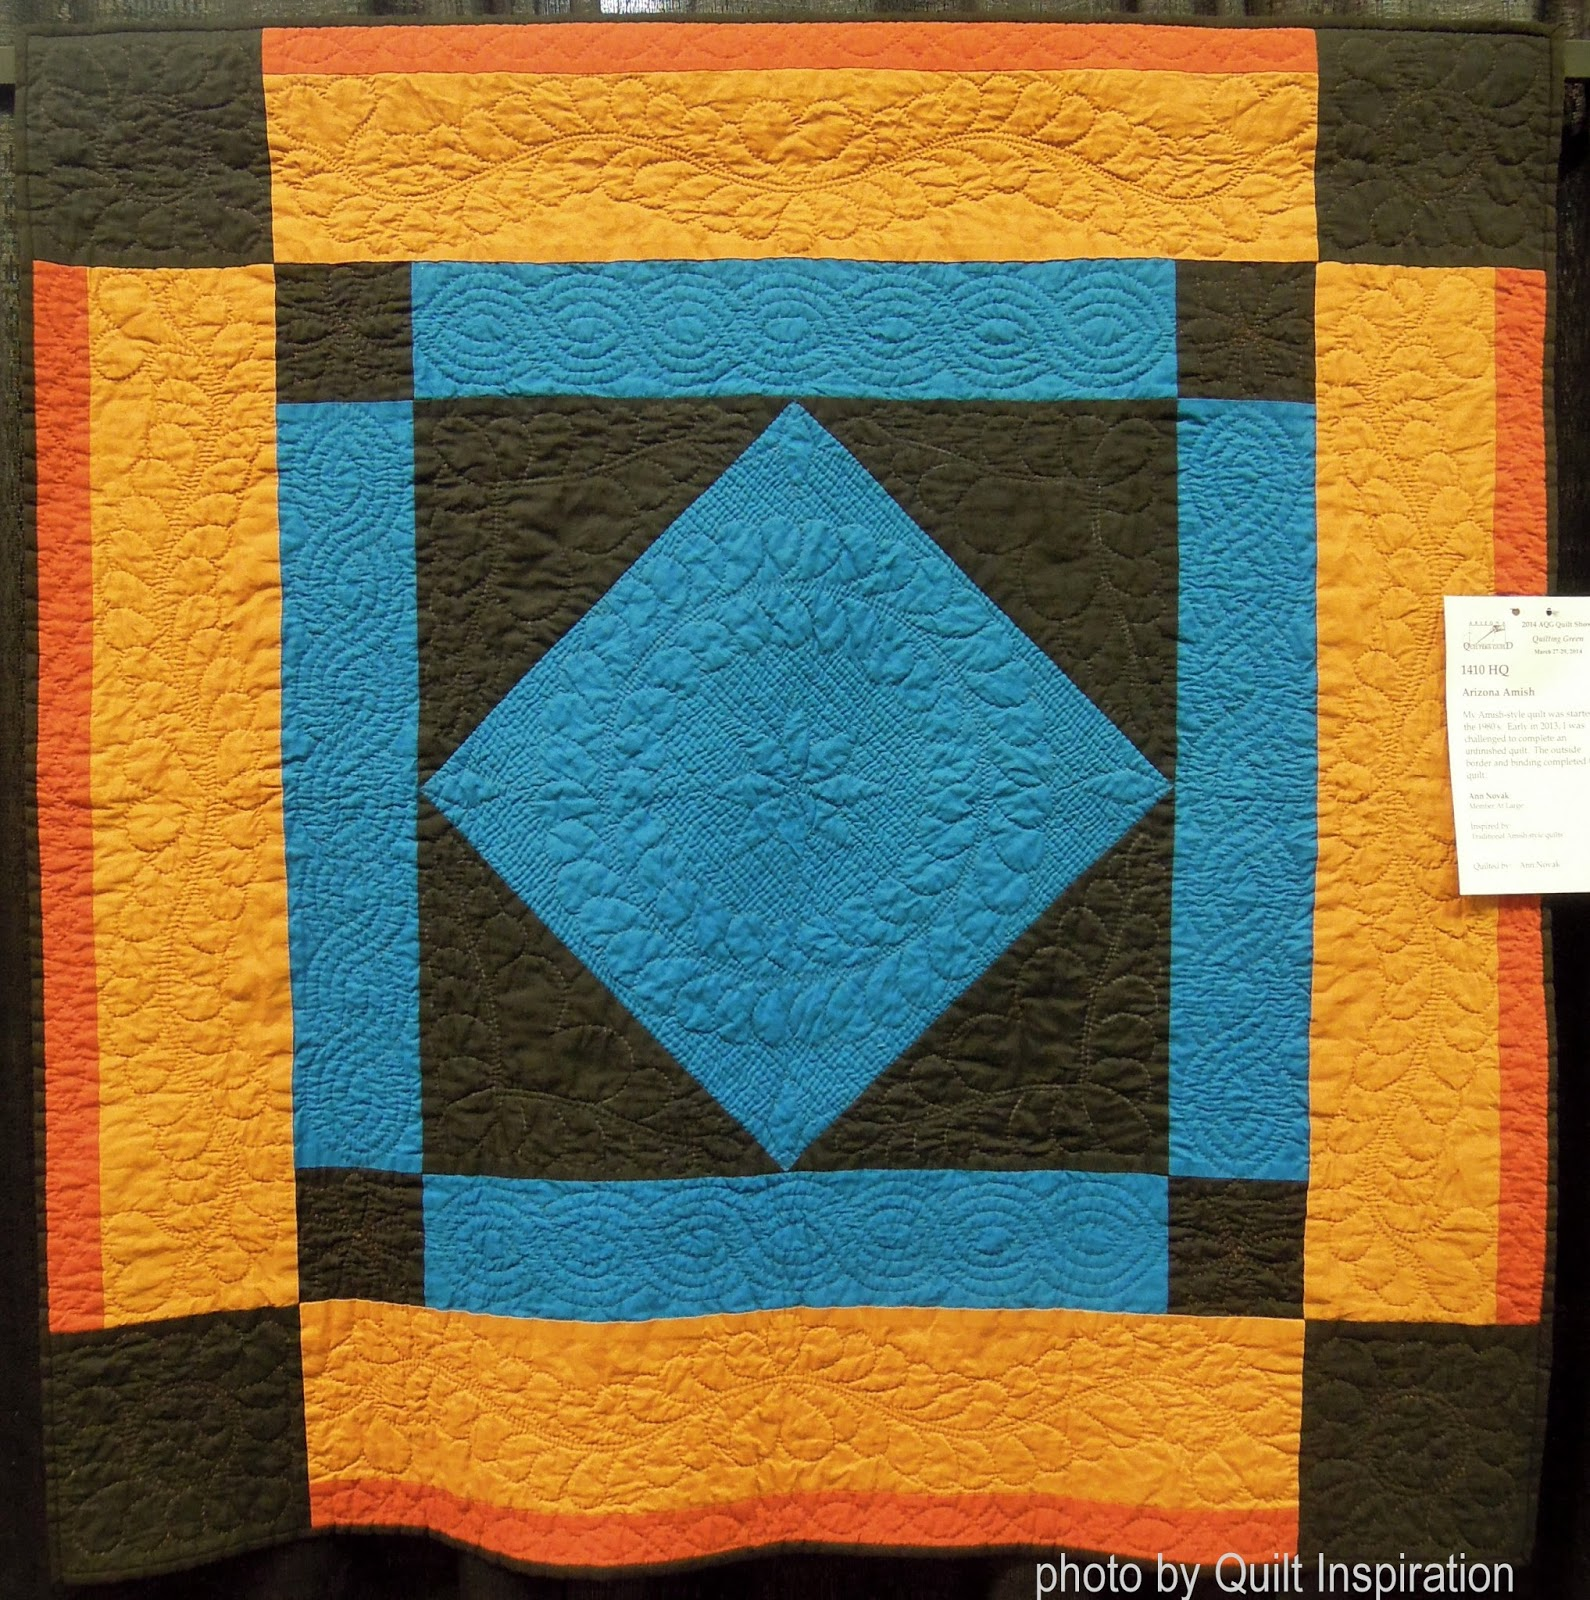 Quilt Inspiration: An Homage to Amish Quilts - photo#22